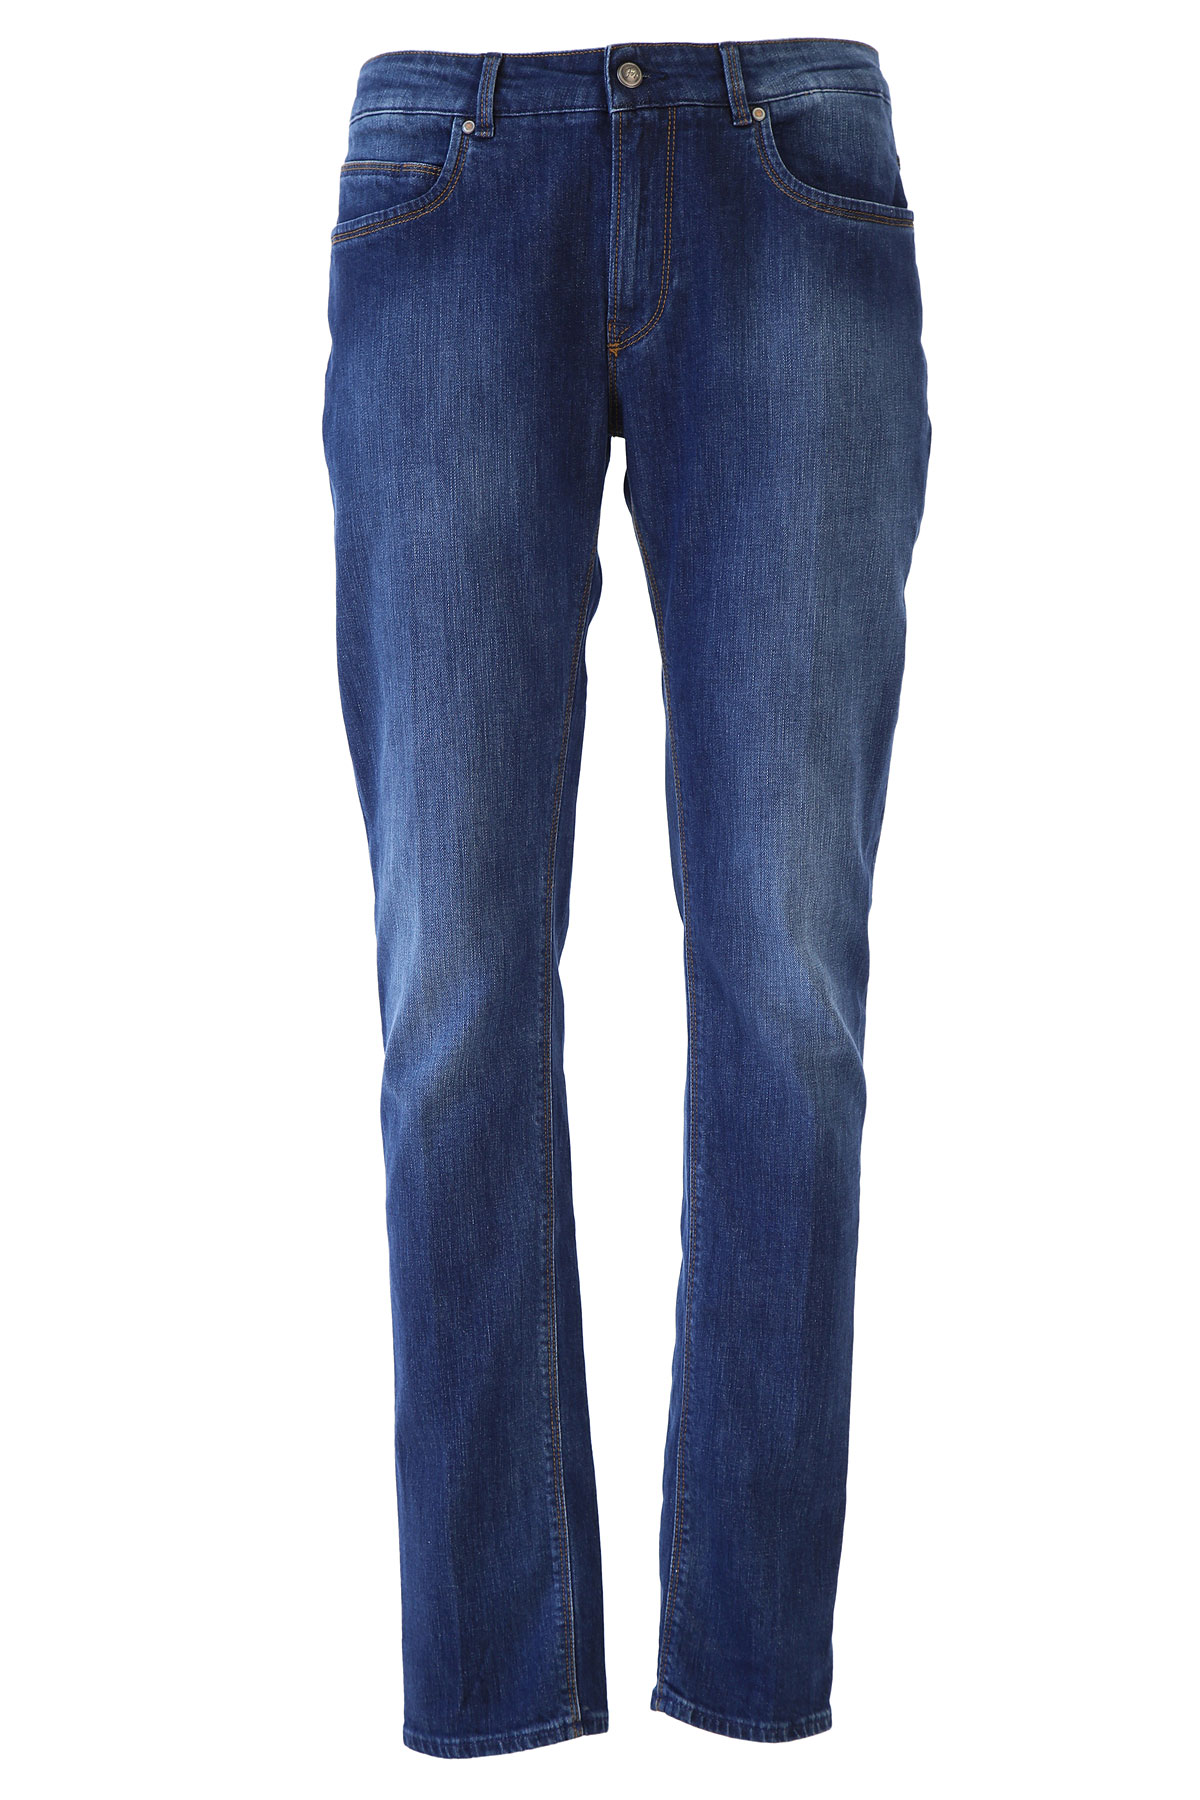 Fay Jeans On Sale, Dark Blue, Cotton, 2017, 38 40